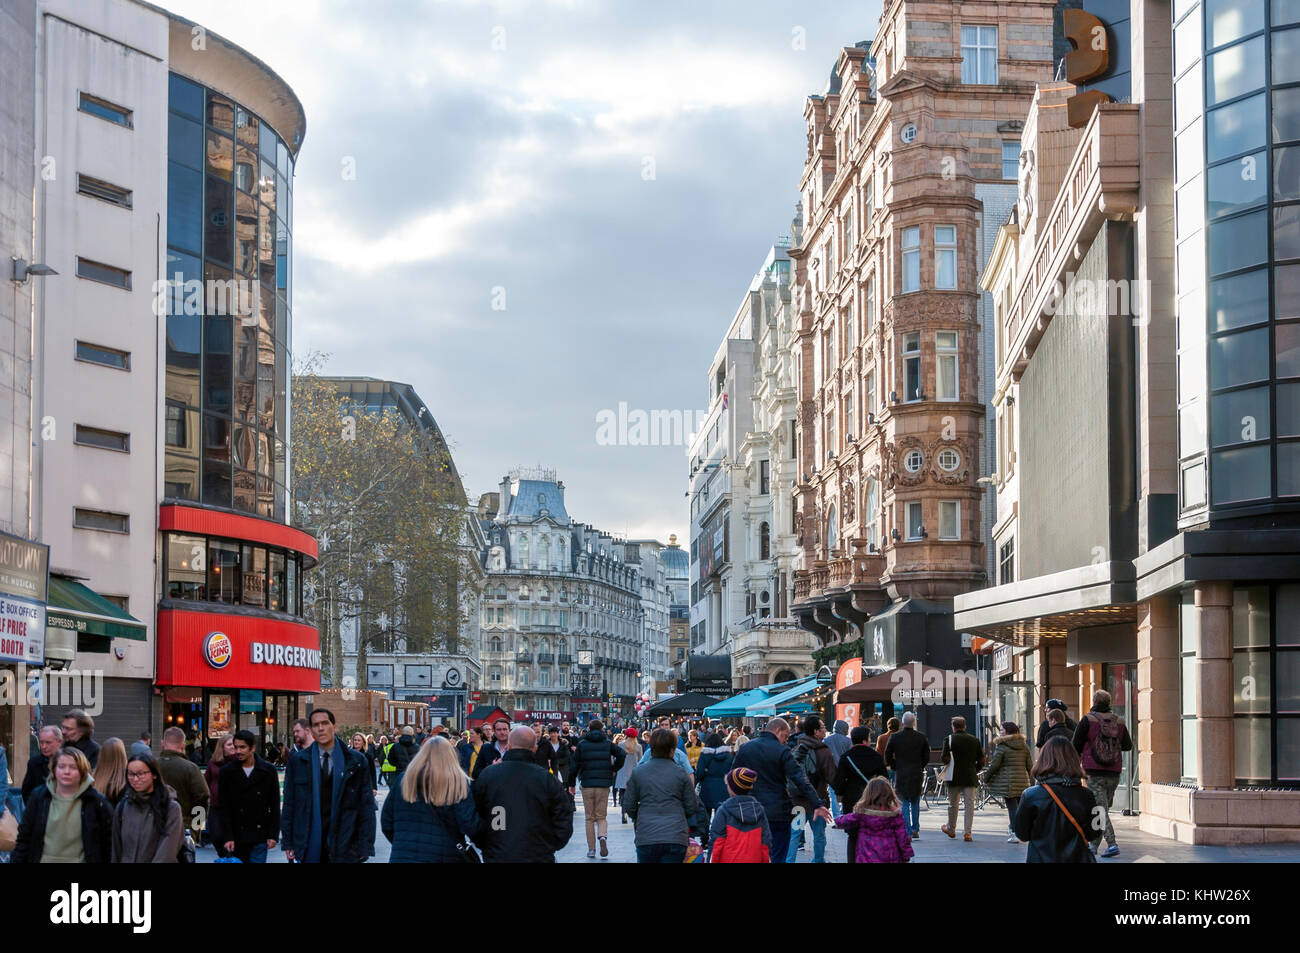 Cranbourn Street, Leicester Square, West End, City of Westminster, Greater London, England, United Kingdom - Stock Image